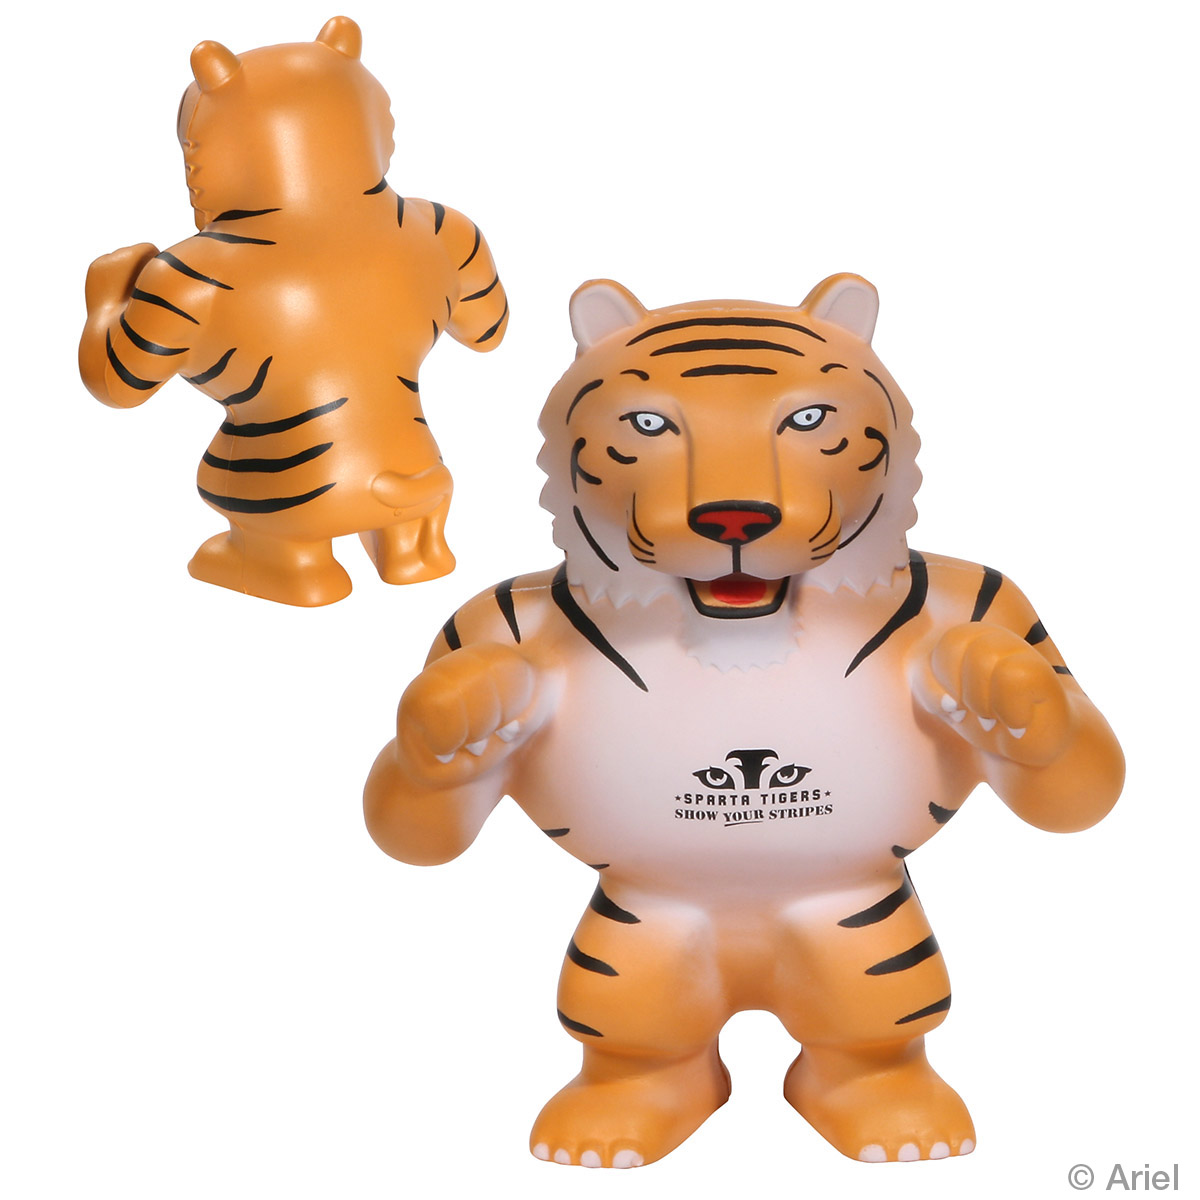 Tiger Mascot Stress Reliever, LMT-GR09 - 1 Colour Imprint